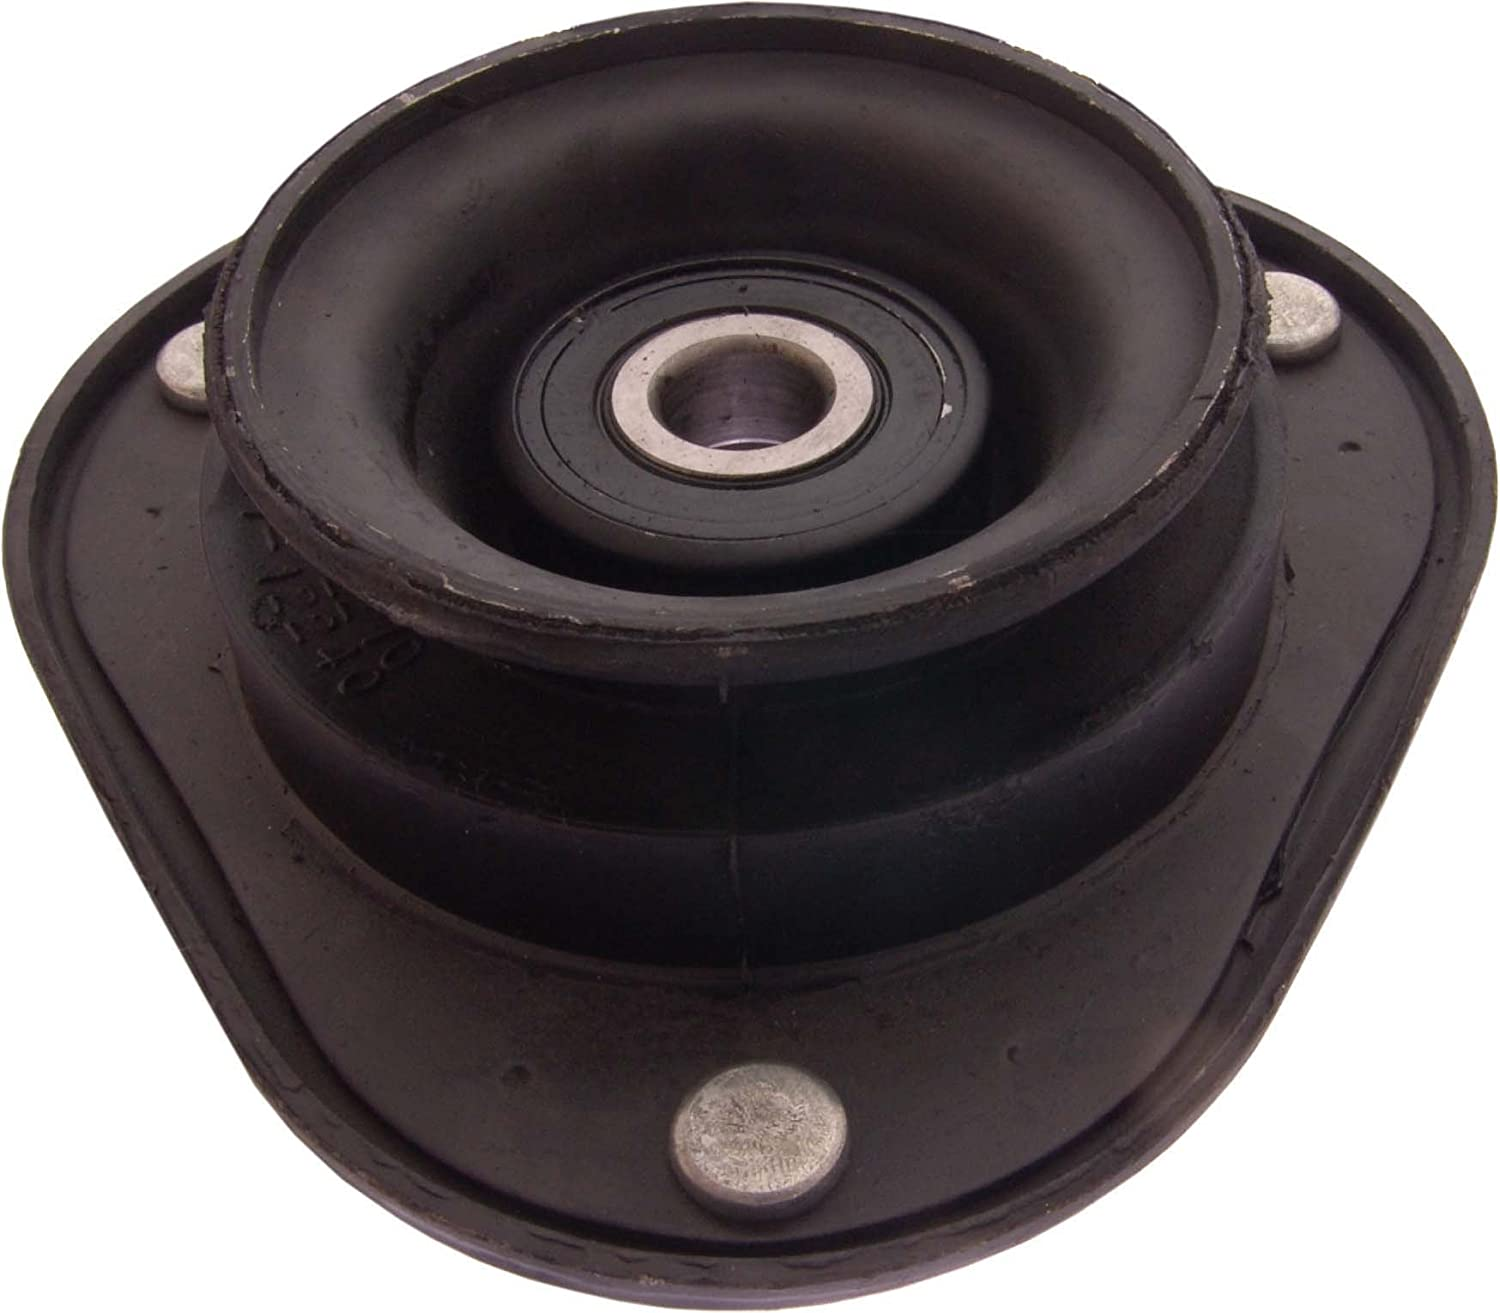 4860912210 - Front Shock All items free shipping Support Absorber Toyota For Sales results No. 1